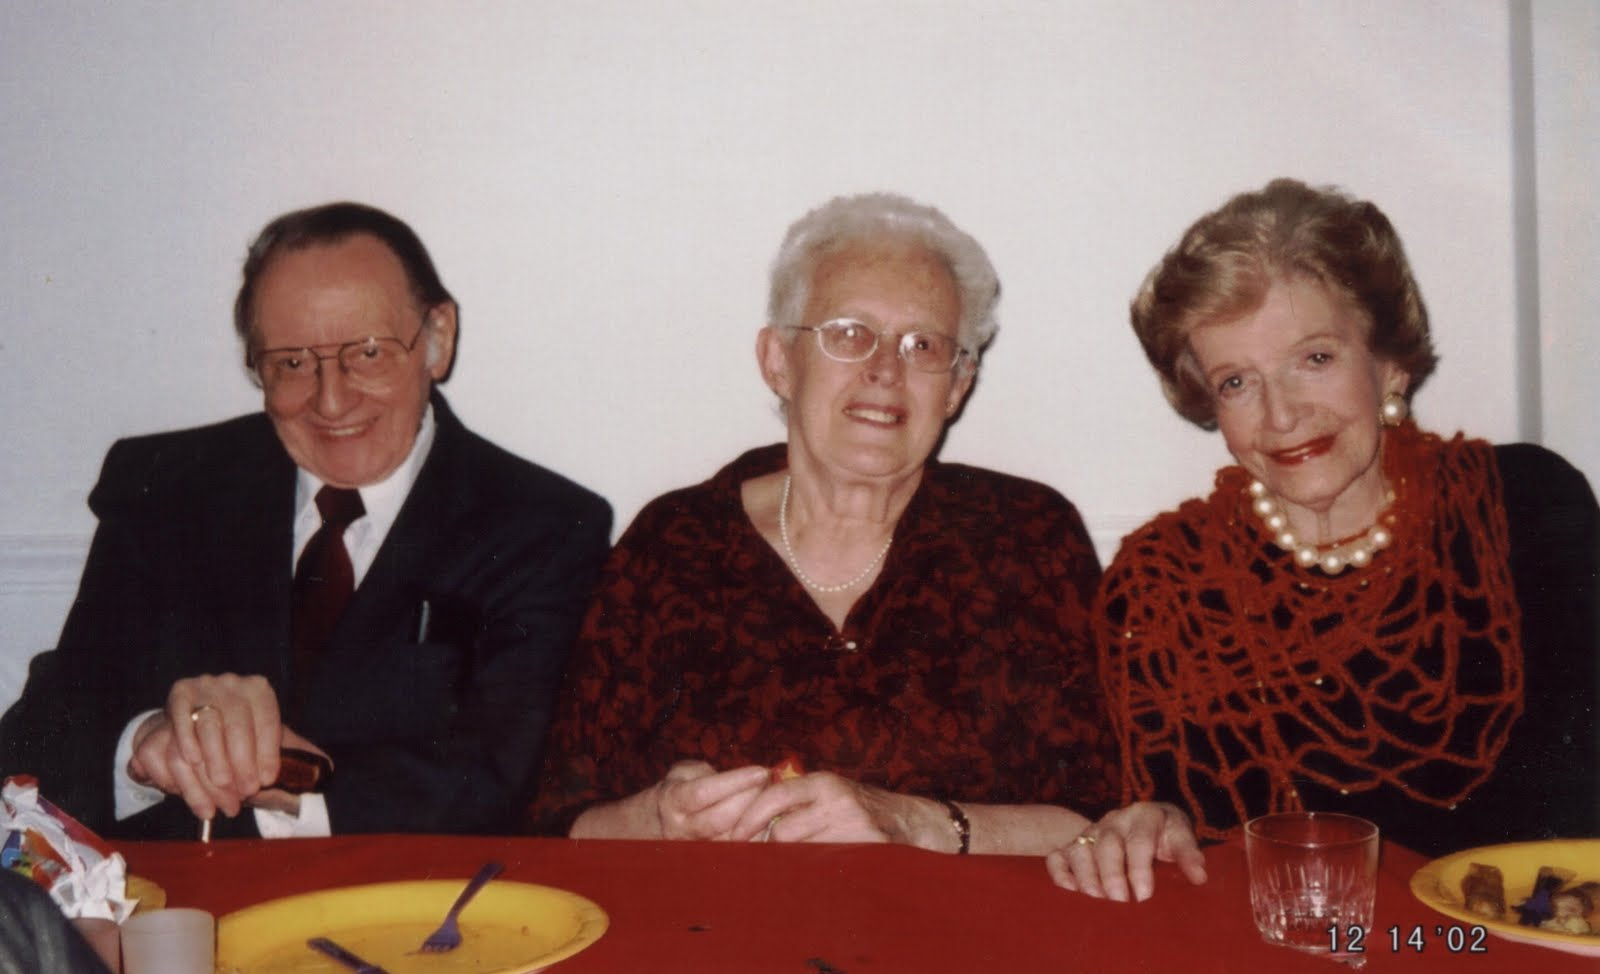 From left_  Rene & Renata Taube (nee Aron) and Gertie D'Amcourt -- 2002